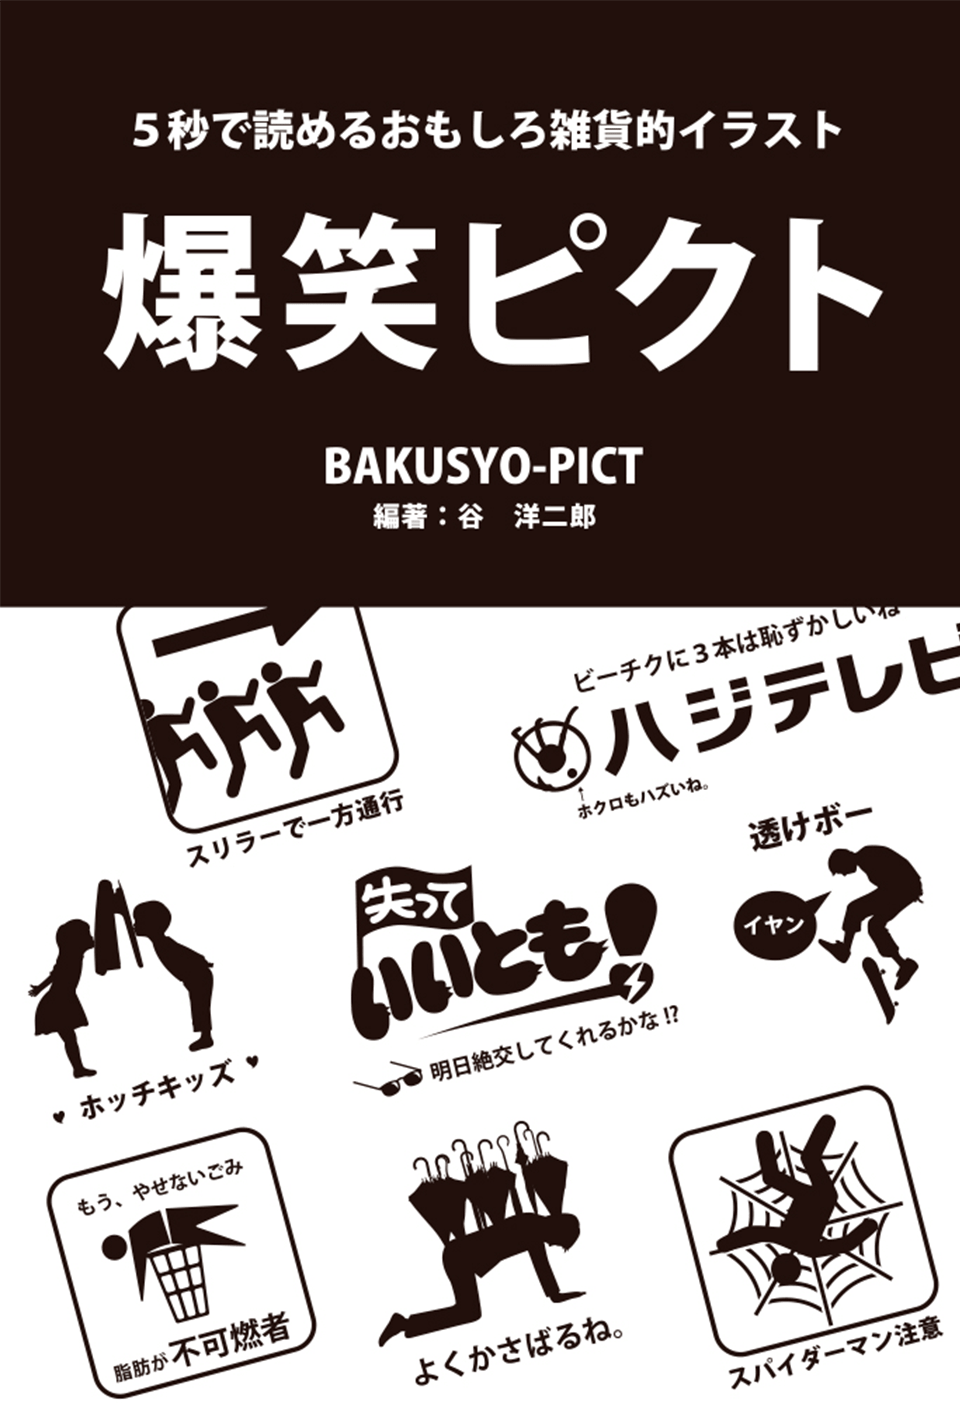 work-bakusyopict